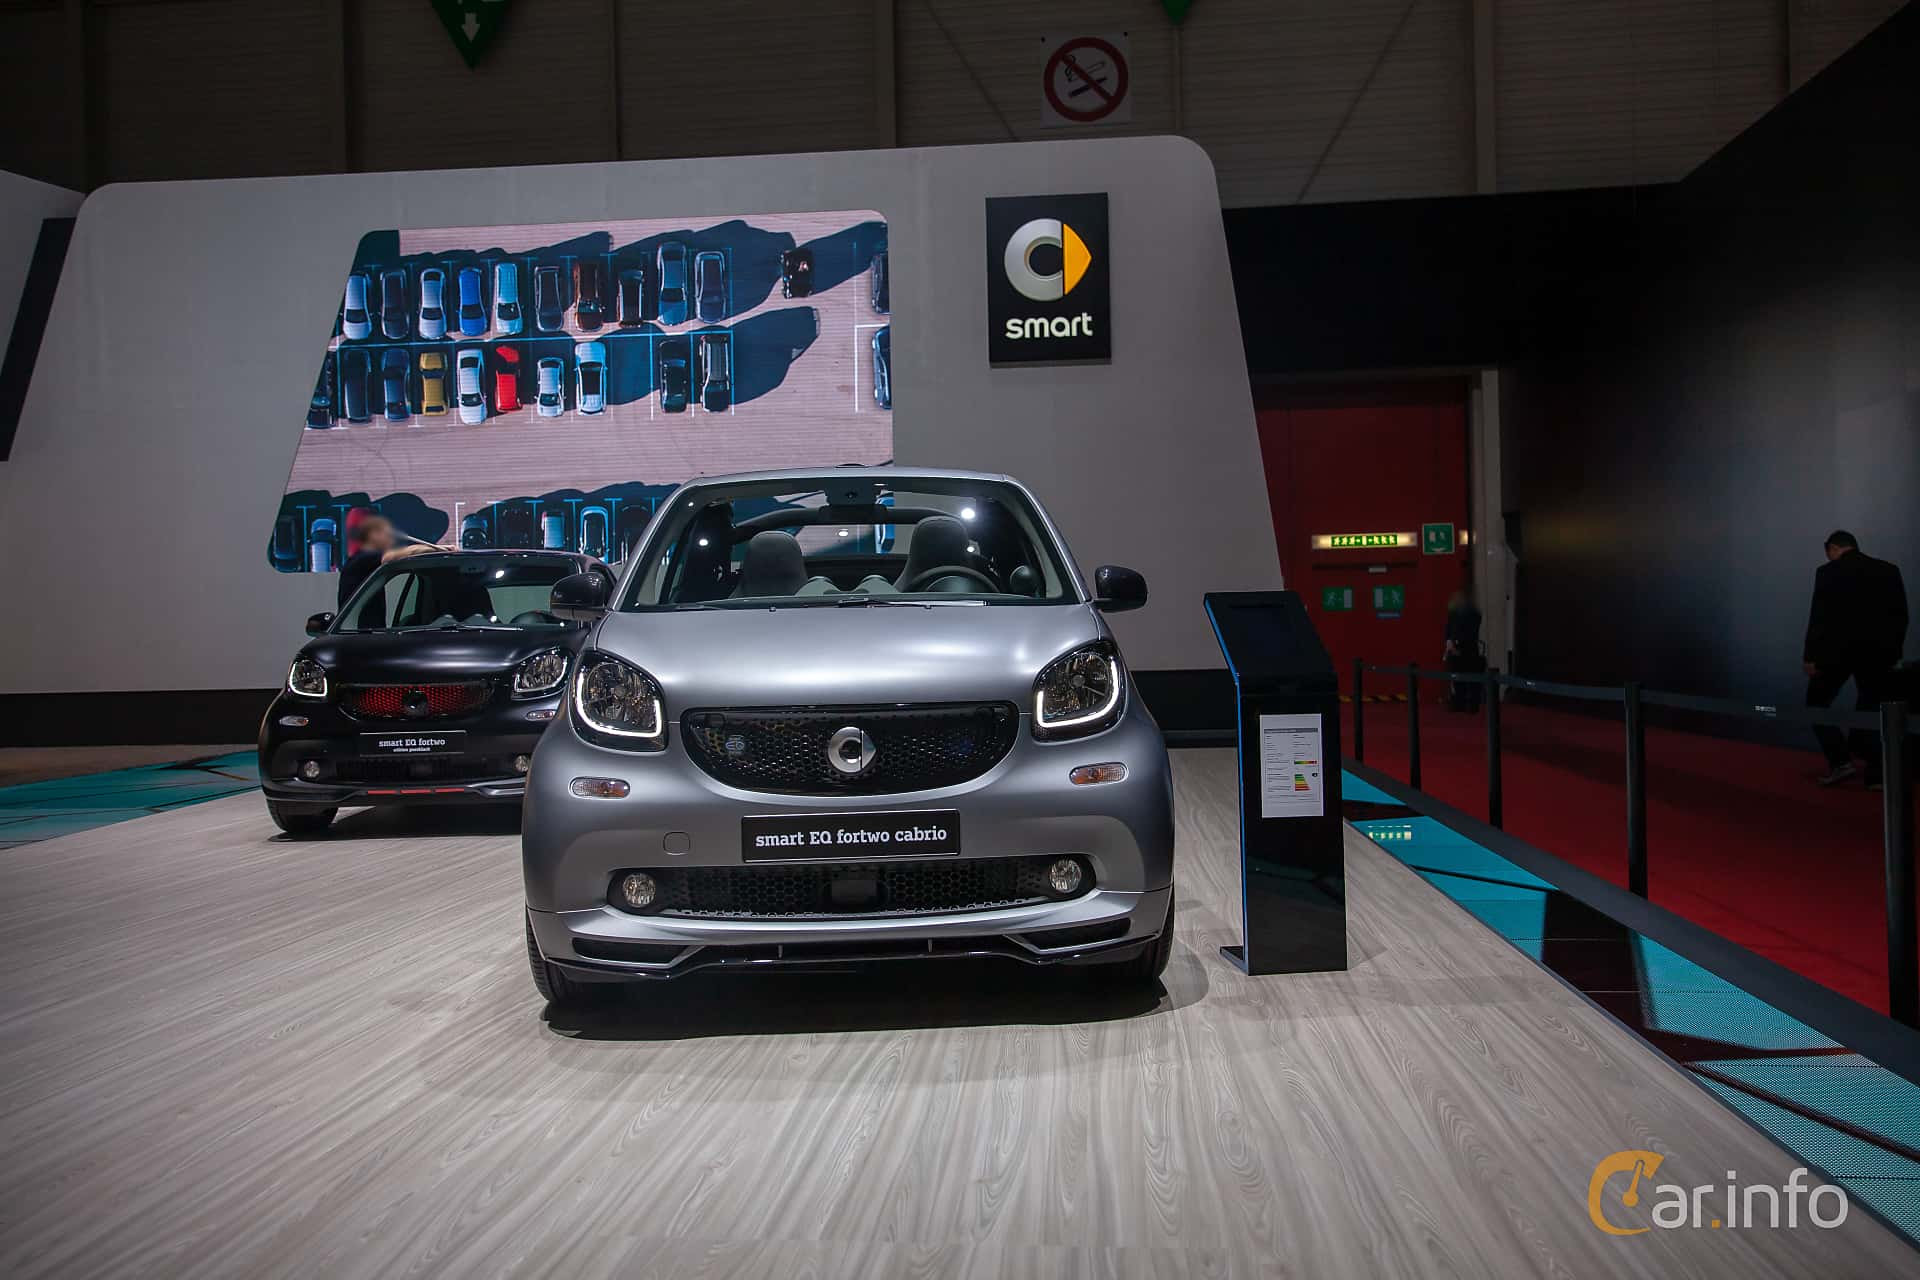 Smart fortwo electric drive cabrio 17.6 kWh Single Speed, 82hp, 2019 at Geneva Motor Show 2019